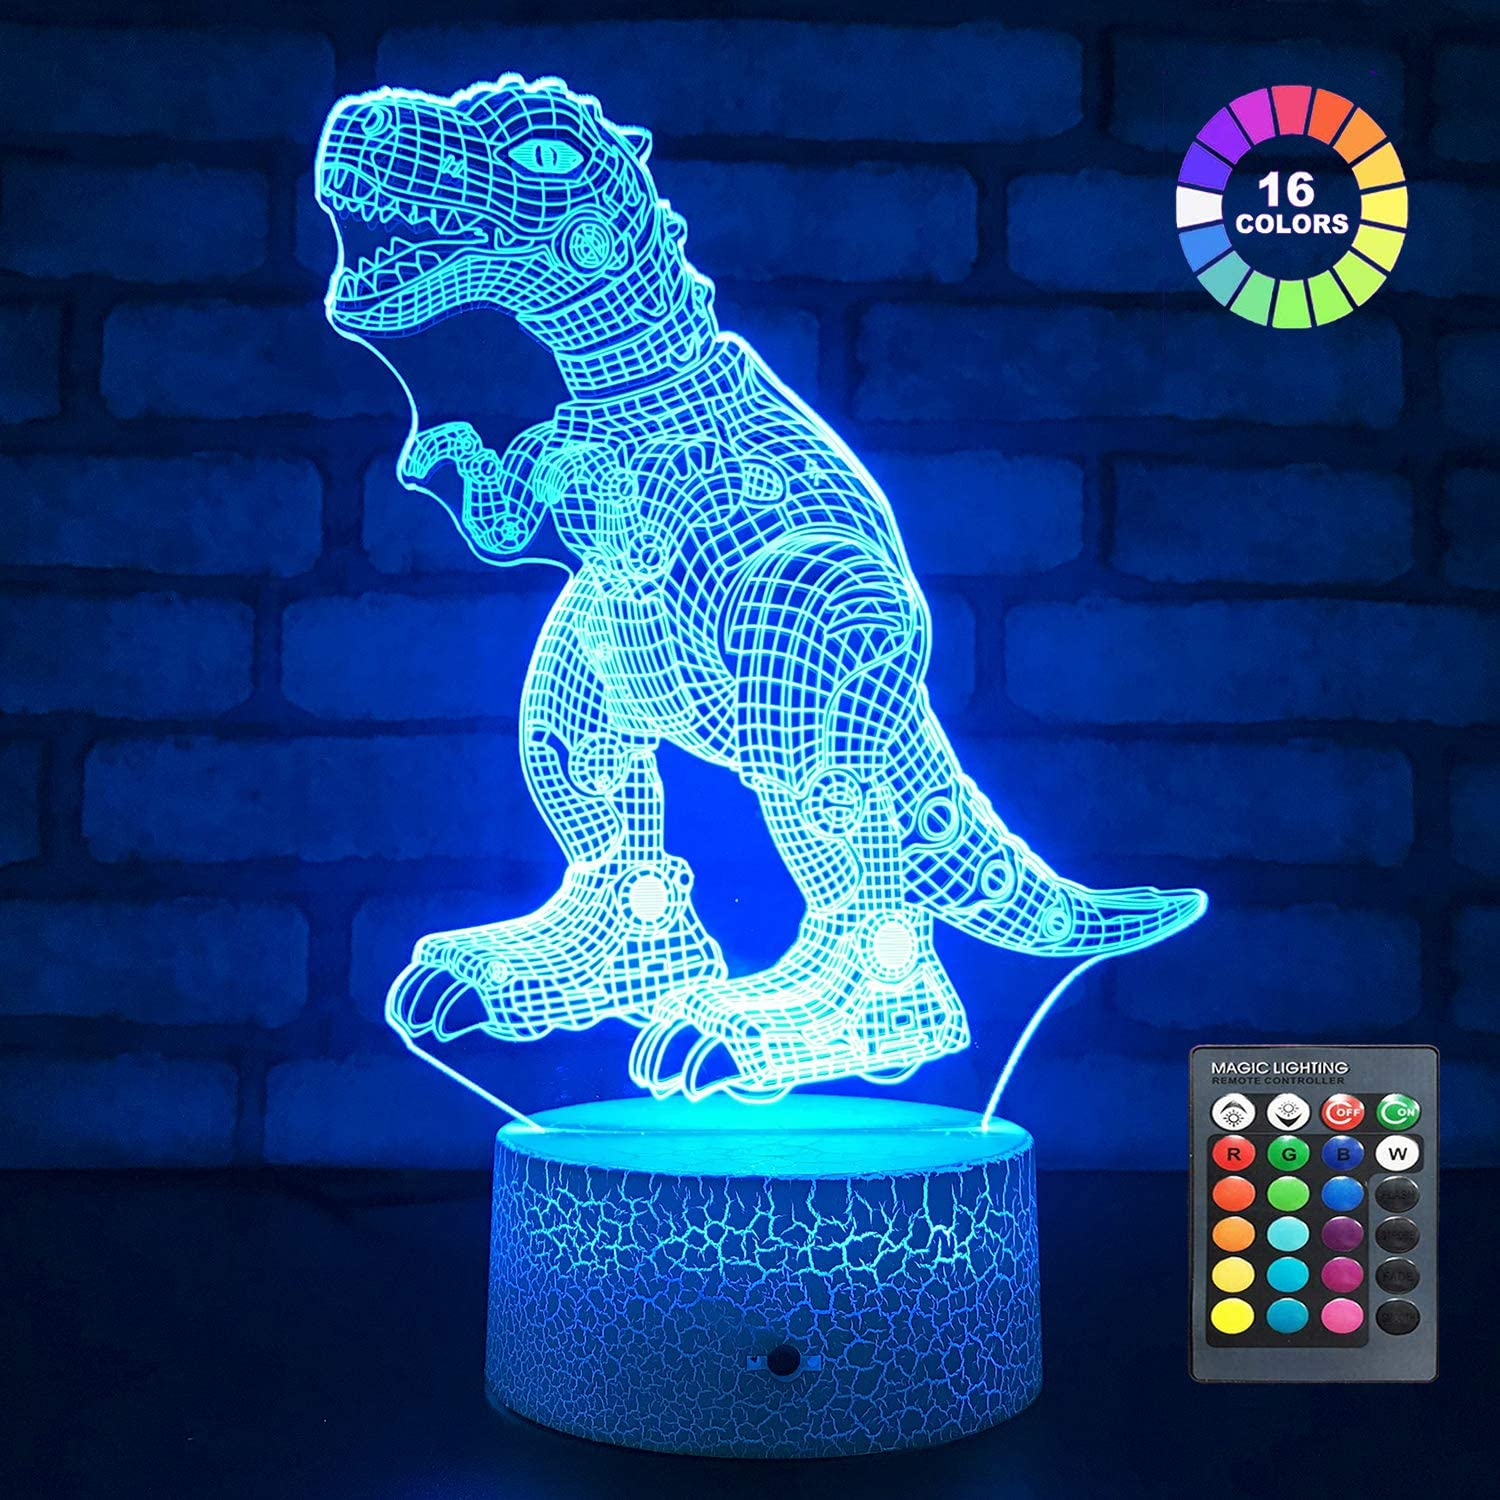 Dinosaur Toys T Rex Dinosaur Gifts Bedside Lamp 3D Night Light with Remote & Smart Touch 7 Colors + 16 Colors Changing Gifts for 1 2 3 4 5 6 7 8 9 10 Year Old Boys